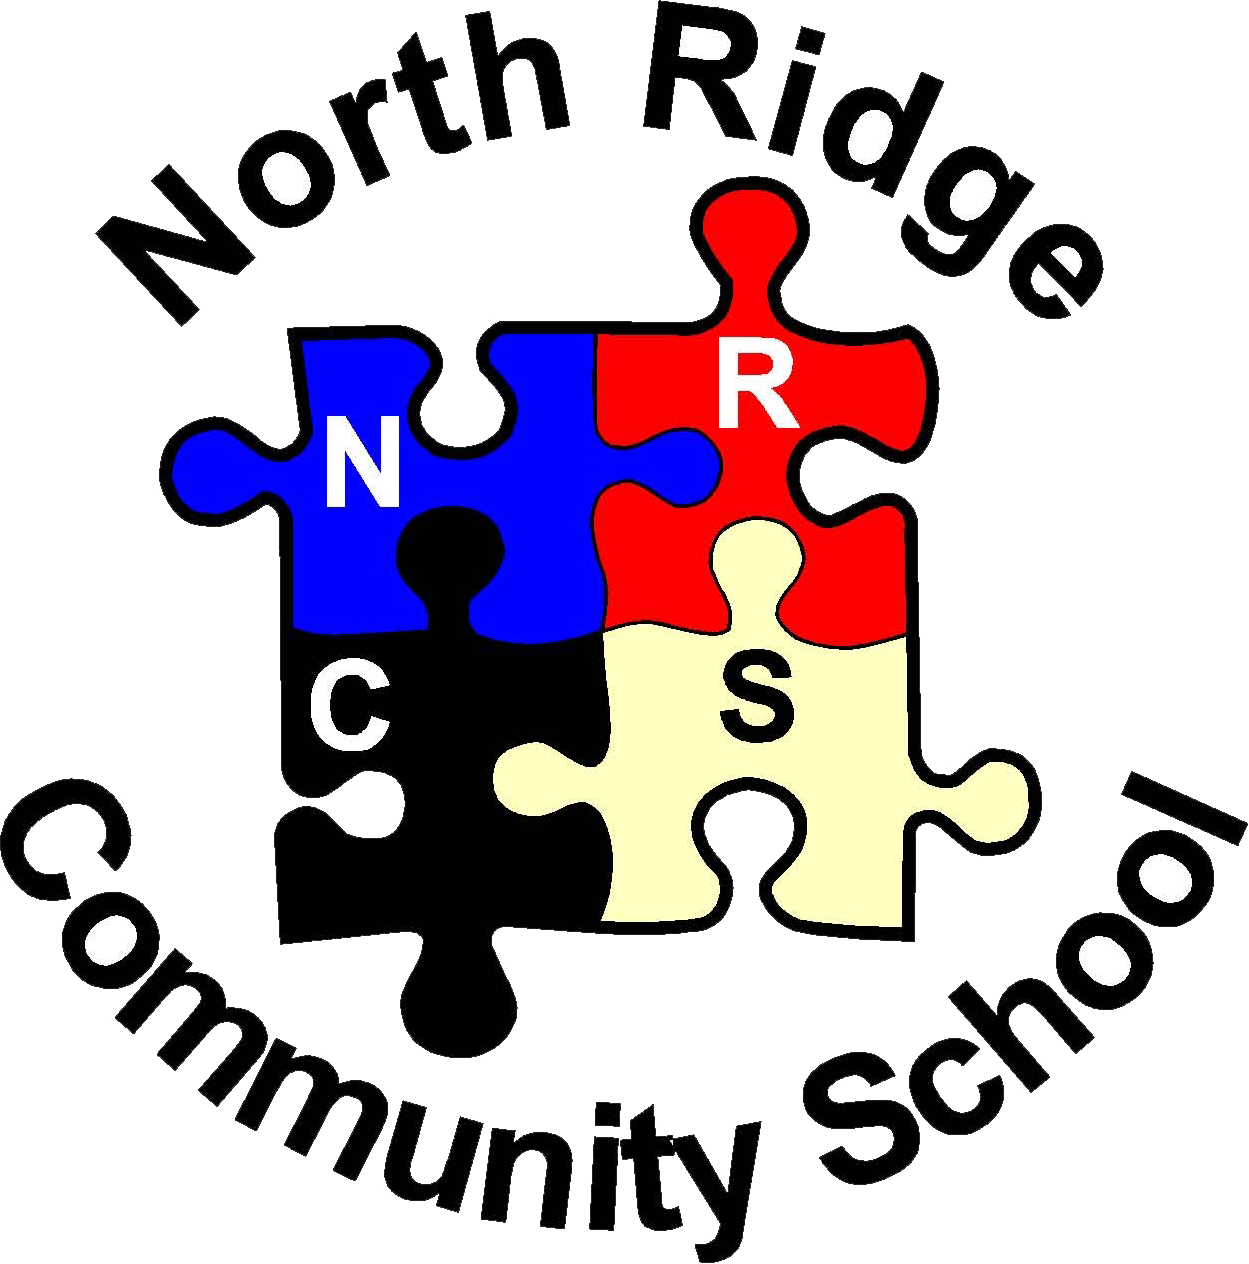 North Ridge Community School